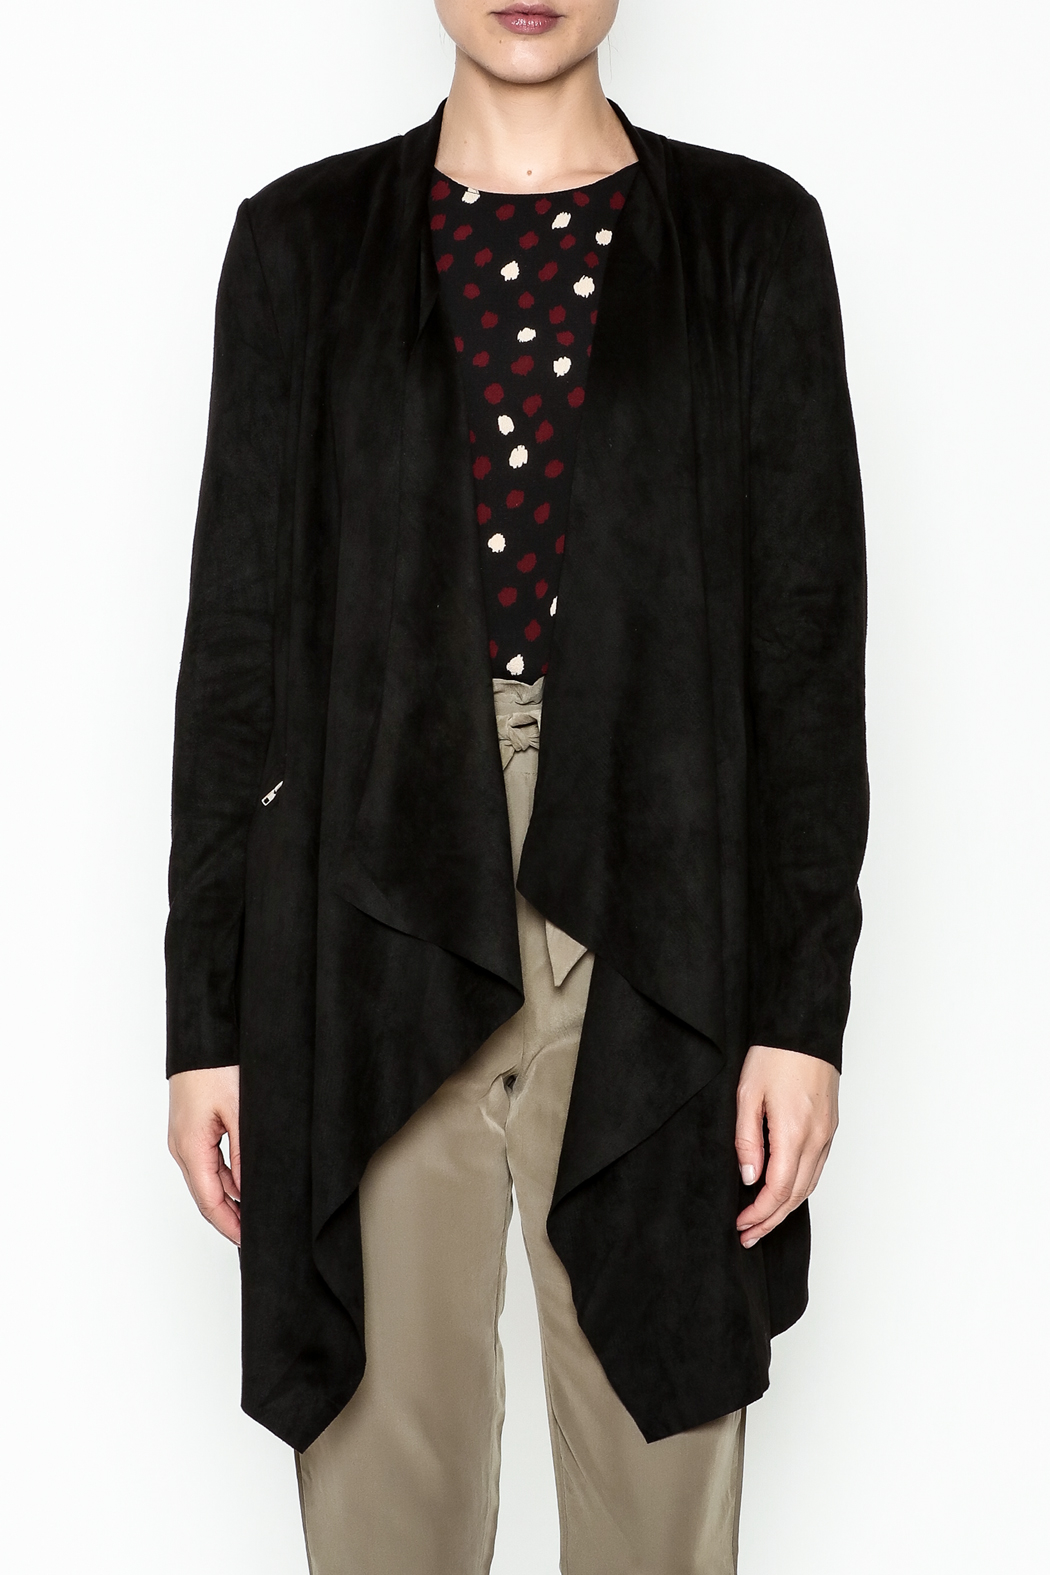 WREN & WILLA Faux Suede Cardigan - Front Full Image